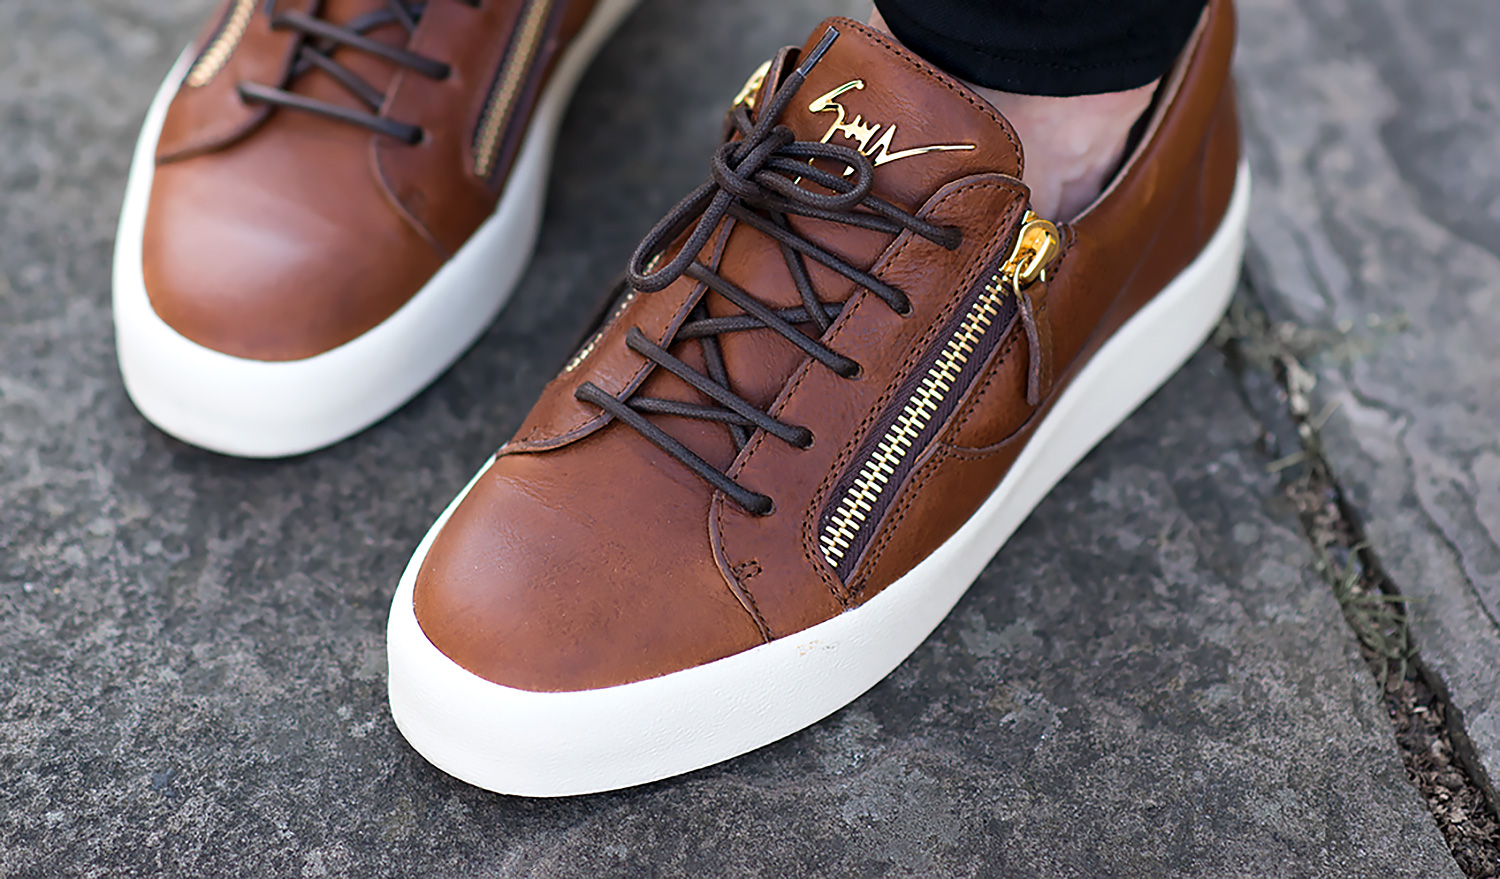 bf311b4e97150 Giuseppe Zanotti Frankie Low Top Sneakers Review | Your Average Guy